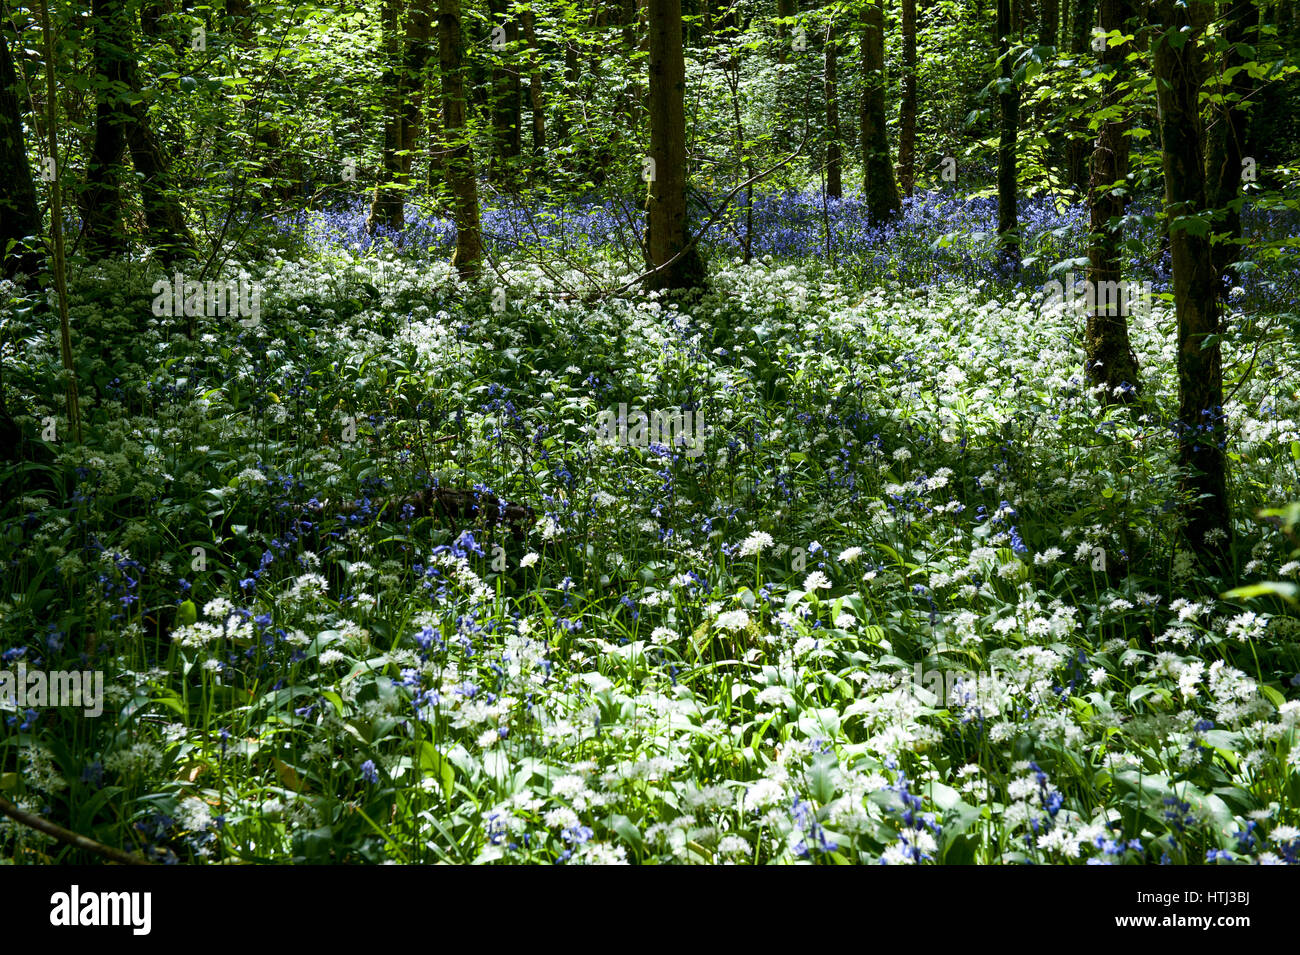 White Flowers of Ramsons or Wild Garlic Plant Allium ursinum - Stock Image